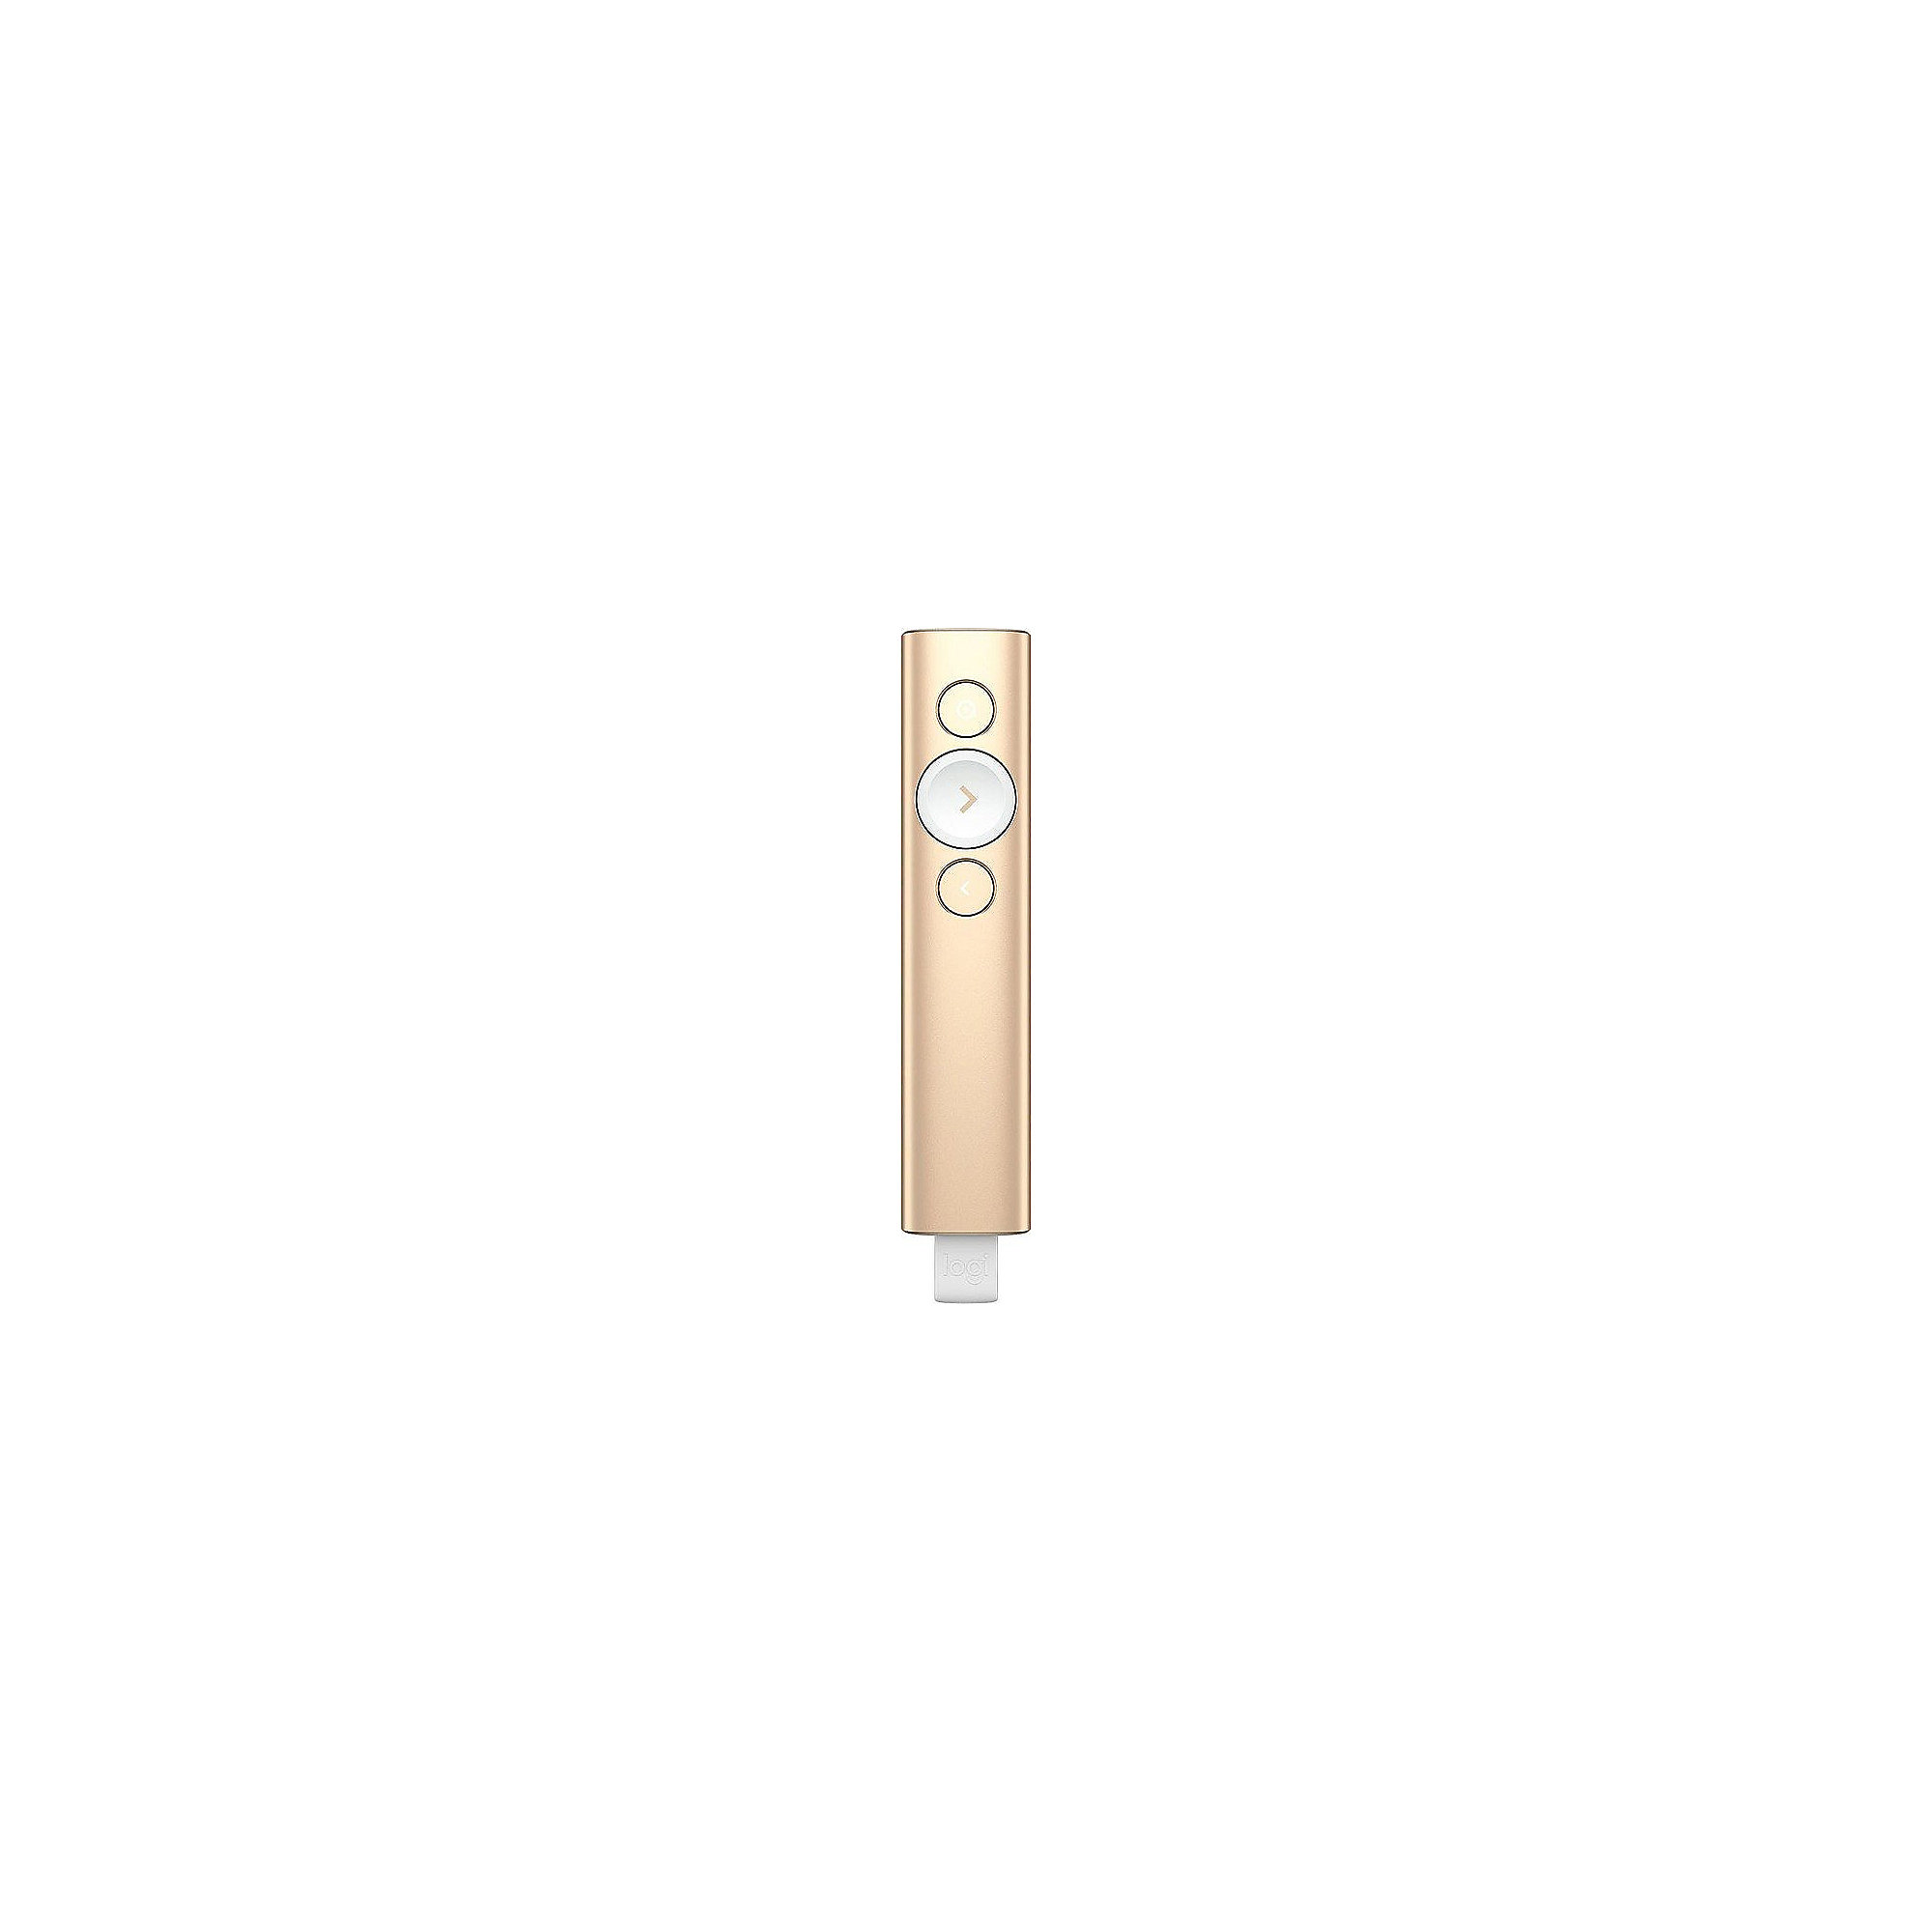 Logitech Spotlight Maus-Presenter USB Bluetooth gold